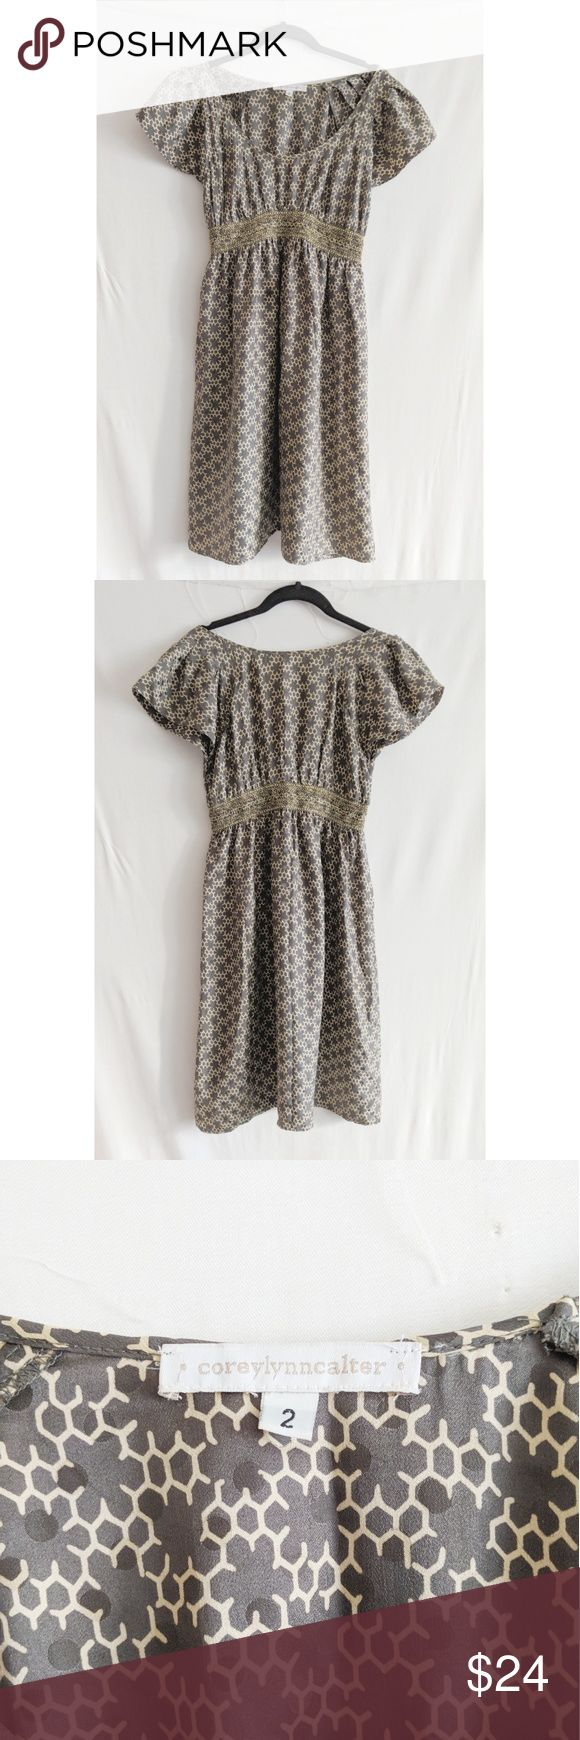 Anthropologie - Dress Silk Printed Dress - Cap sleeves - Scoop neck - Gold metallic, elastic waistband. - Lightweight - Work Wear  100% silk  Size on tag: 2  Excellent Condition  Measured flat in inches Armpit to armpit 17 Waist 13 Hem 26 Height 37 Anthropologie Dresses